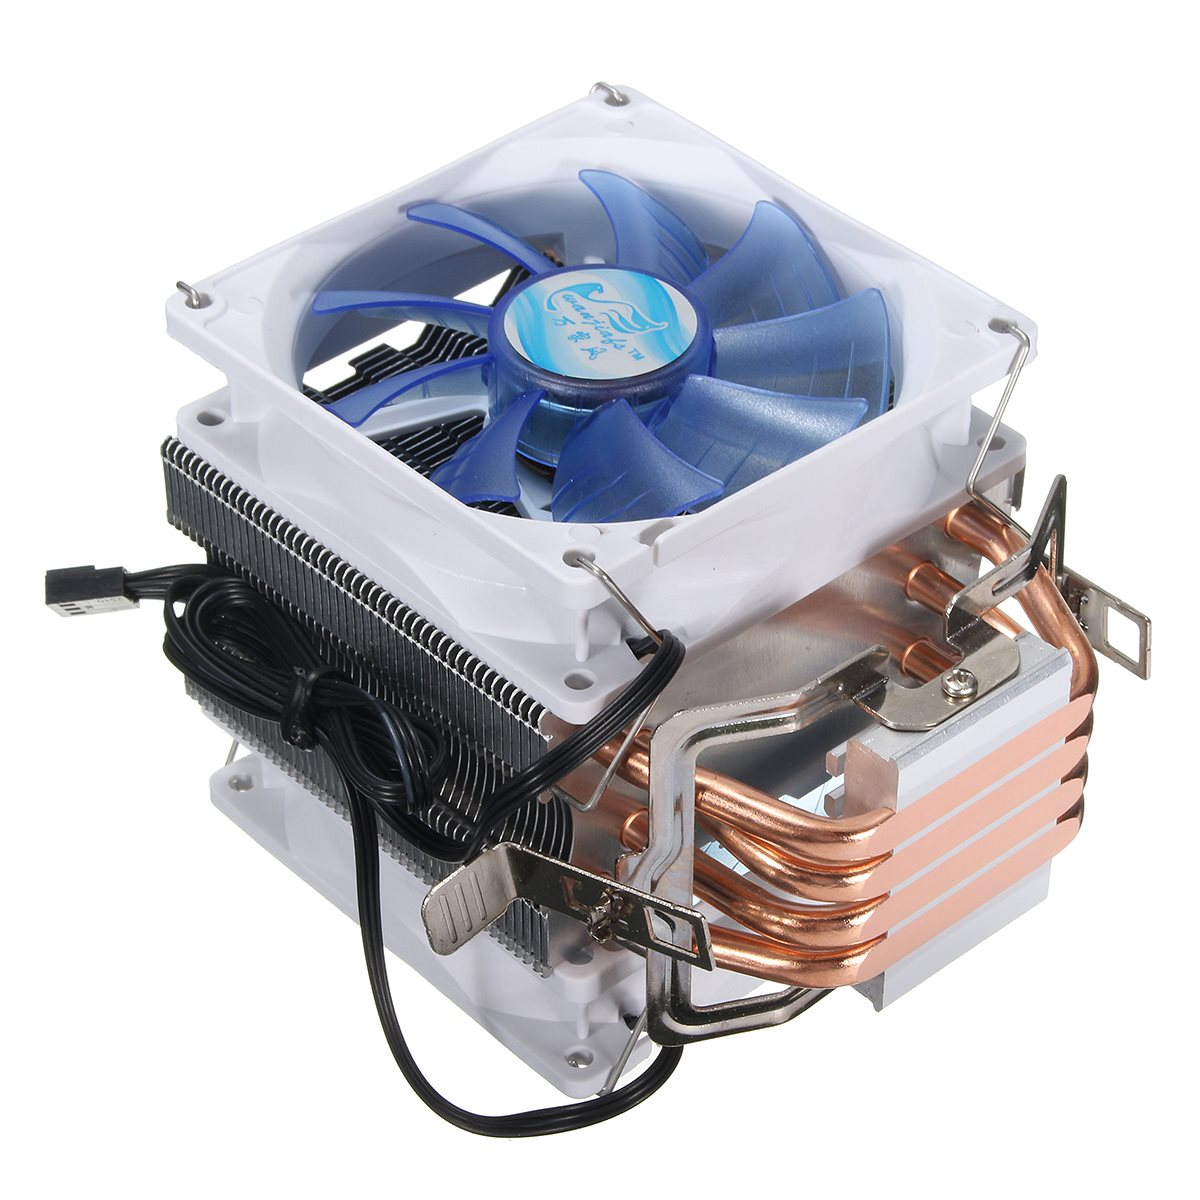 Newest 12V Dual CPU Cooler Fan Quiet Blue LED Light 92x92x25mm 3pin Powerful Fan for Intel LGA775/1156/1155 for AMD AM2/3 accelero xtreme iii vga cooler 3 quiet 92mm pwm fans for amd